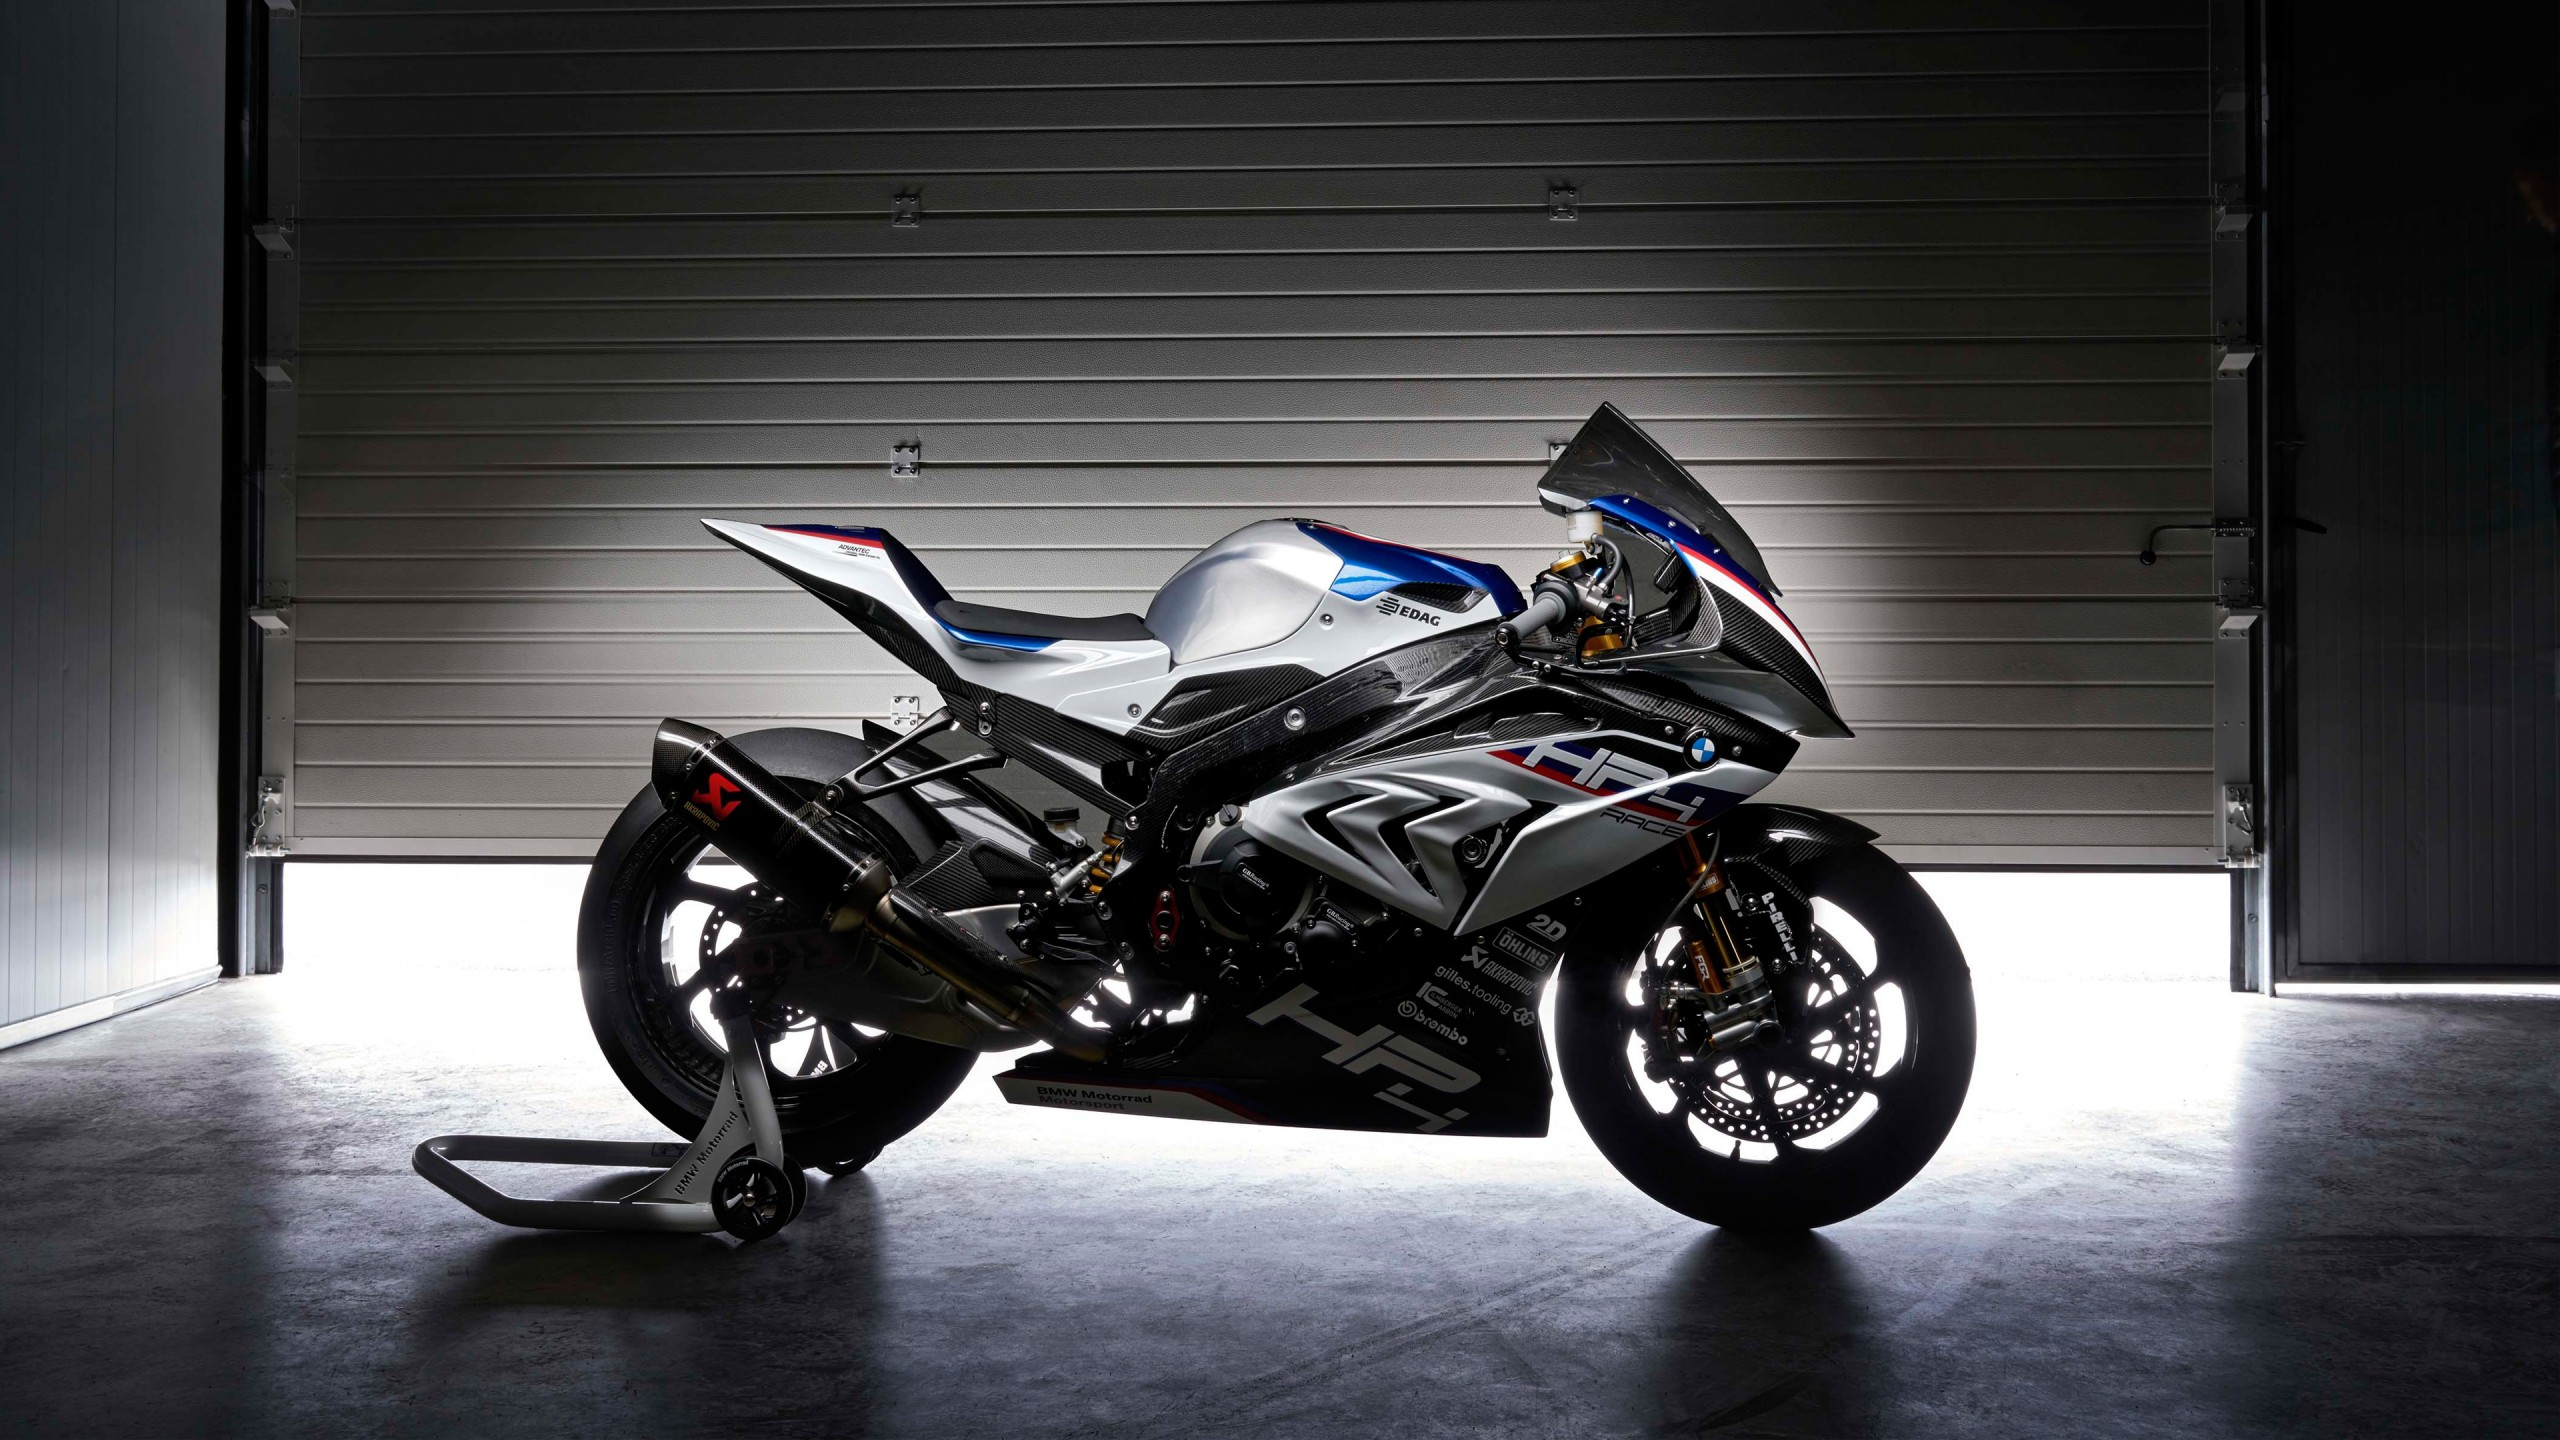 Hd Motorcycle Wallpaper Widescreen Bmw Hp4 Race 4k Wallpapers Hd Wallpapers Id 20222